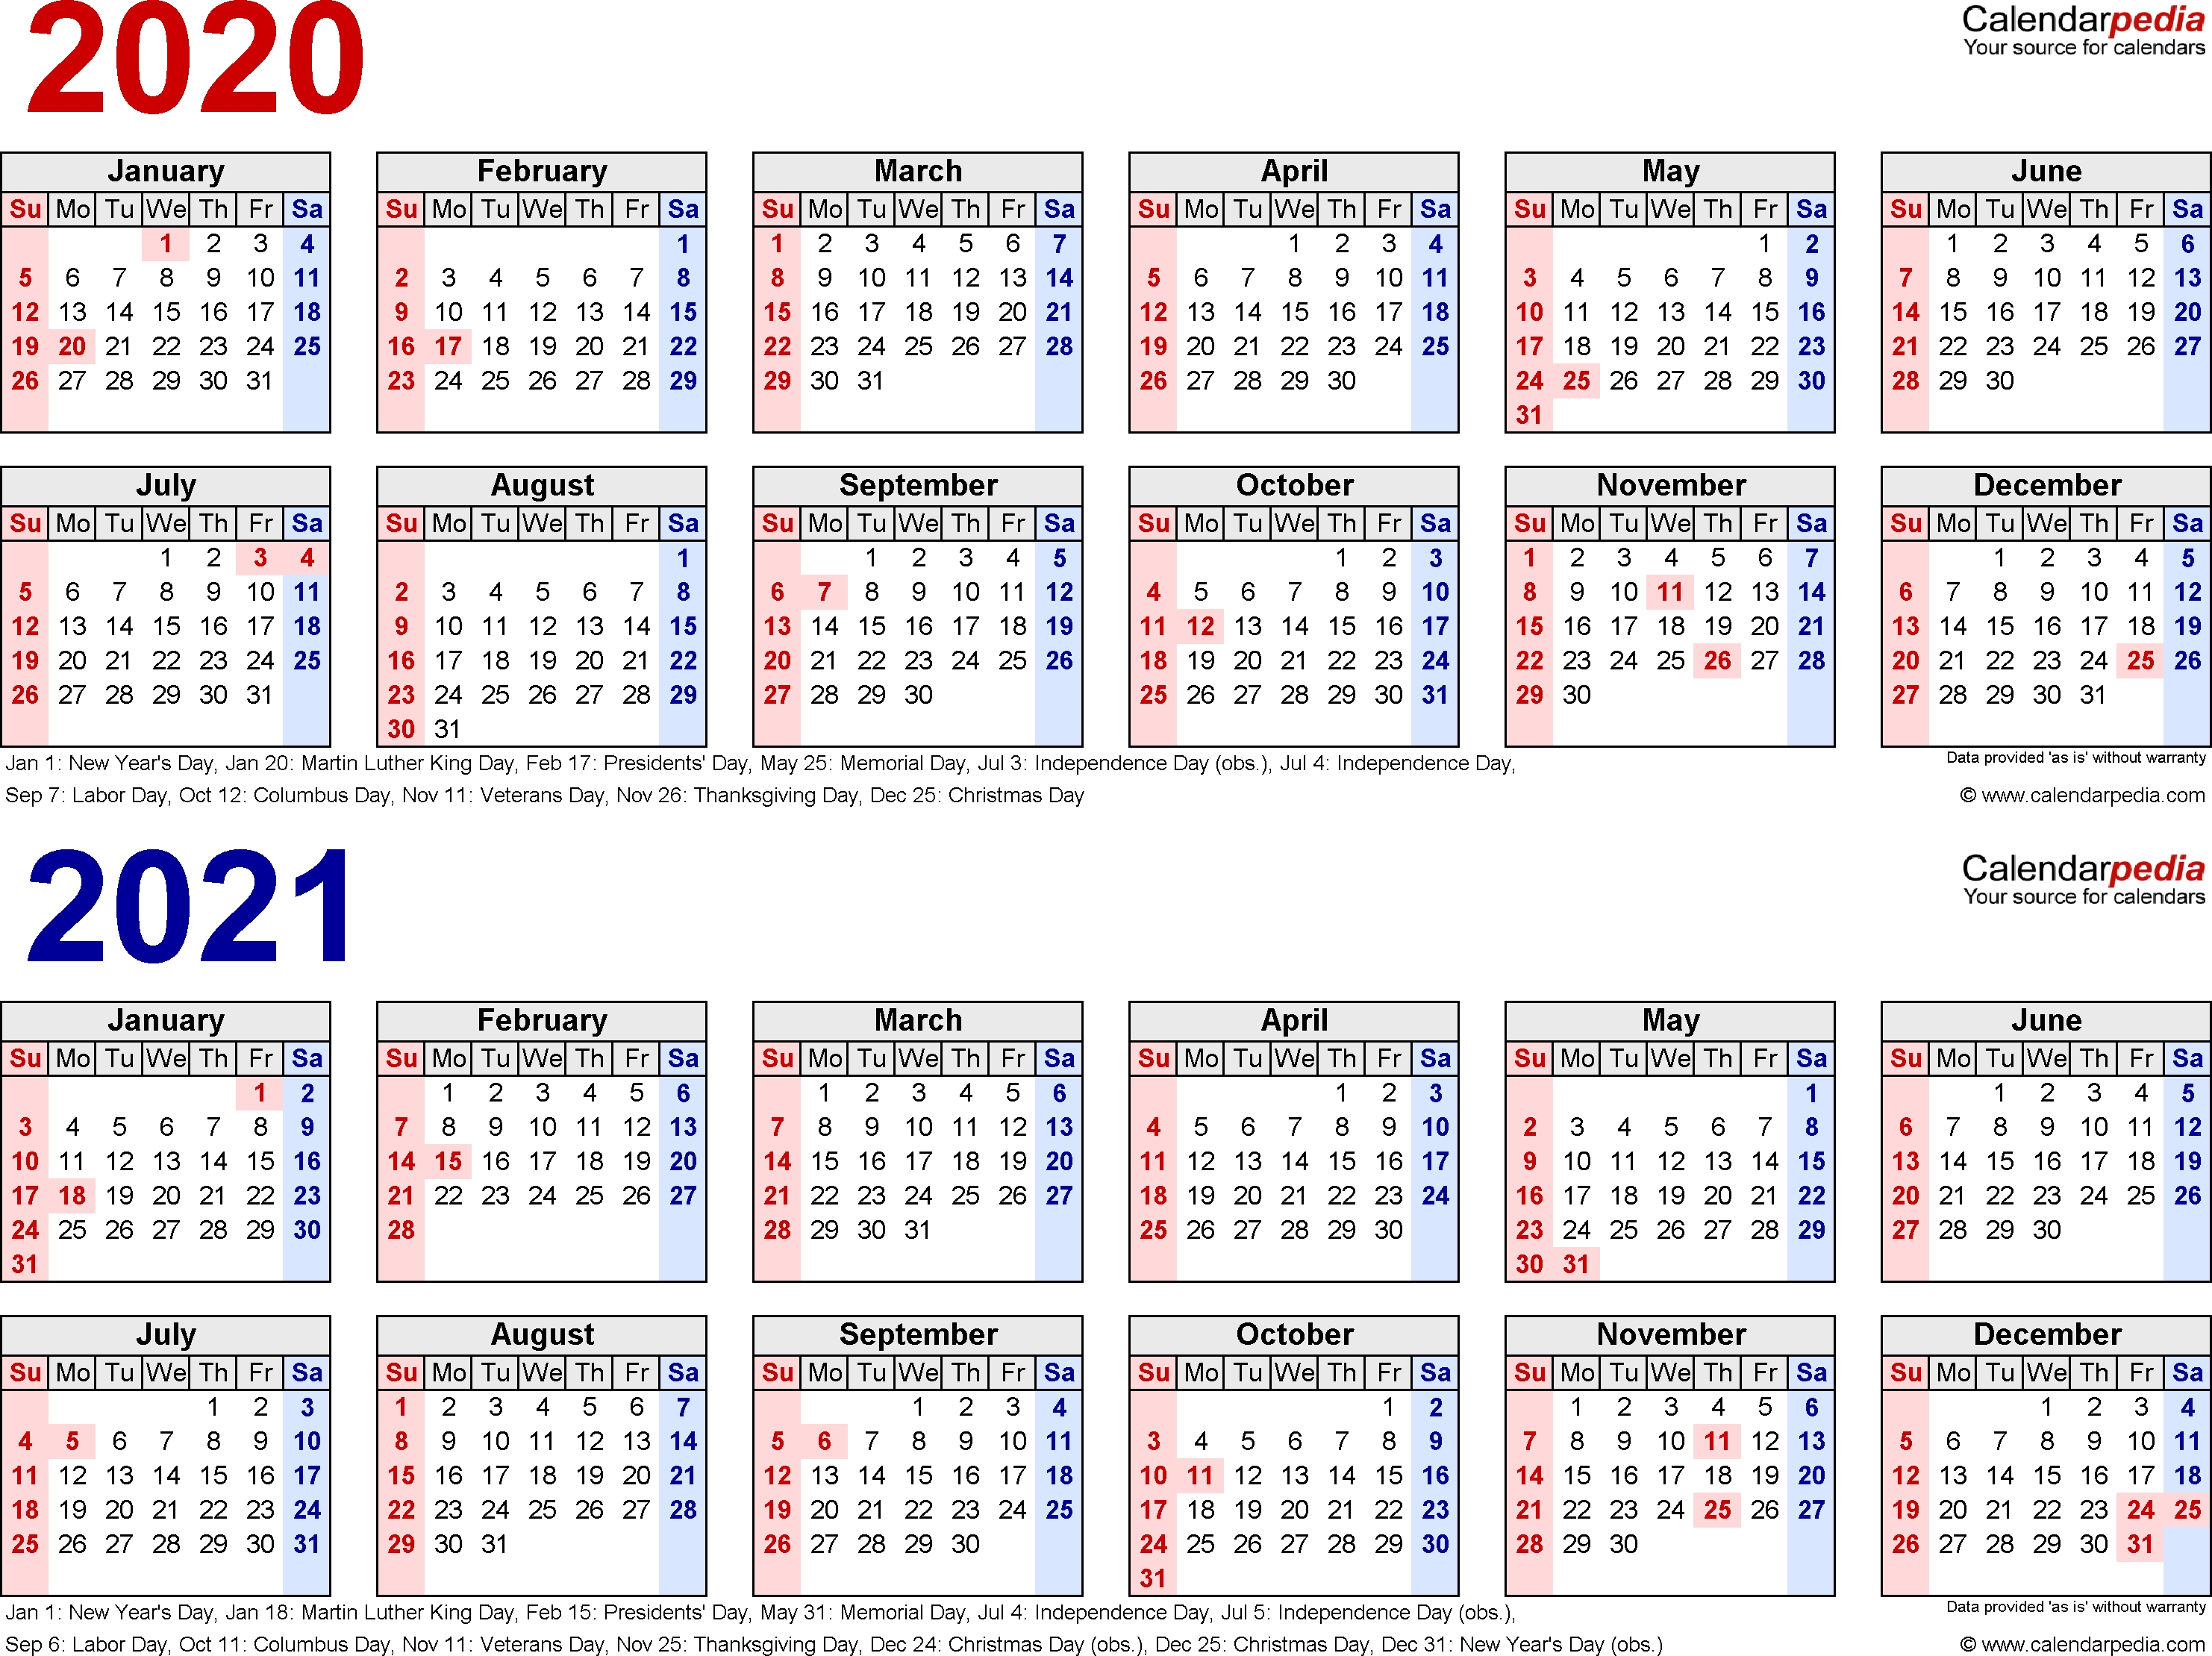 2020-2021 Calendar - Free Printable Two-Year Excel Calendars with regard to 10 Years Calendar From 2020